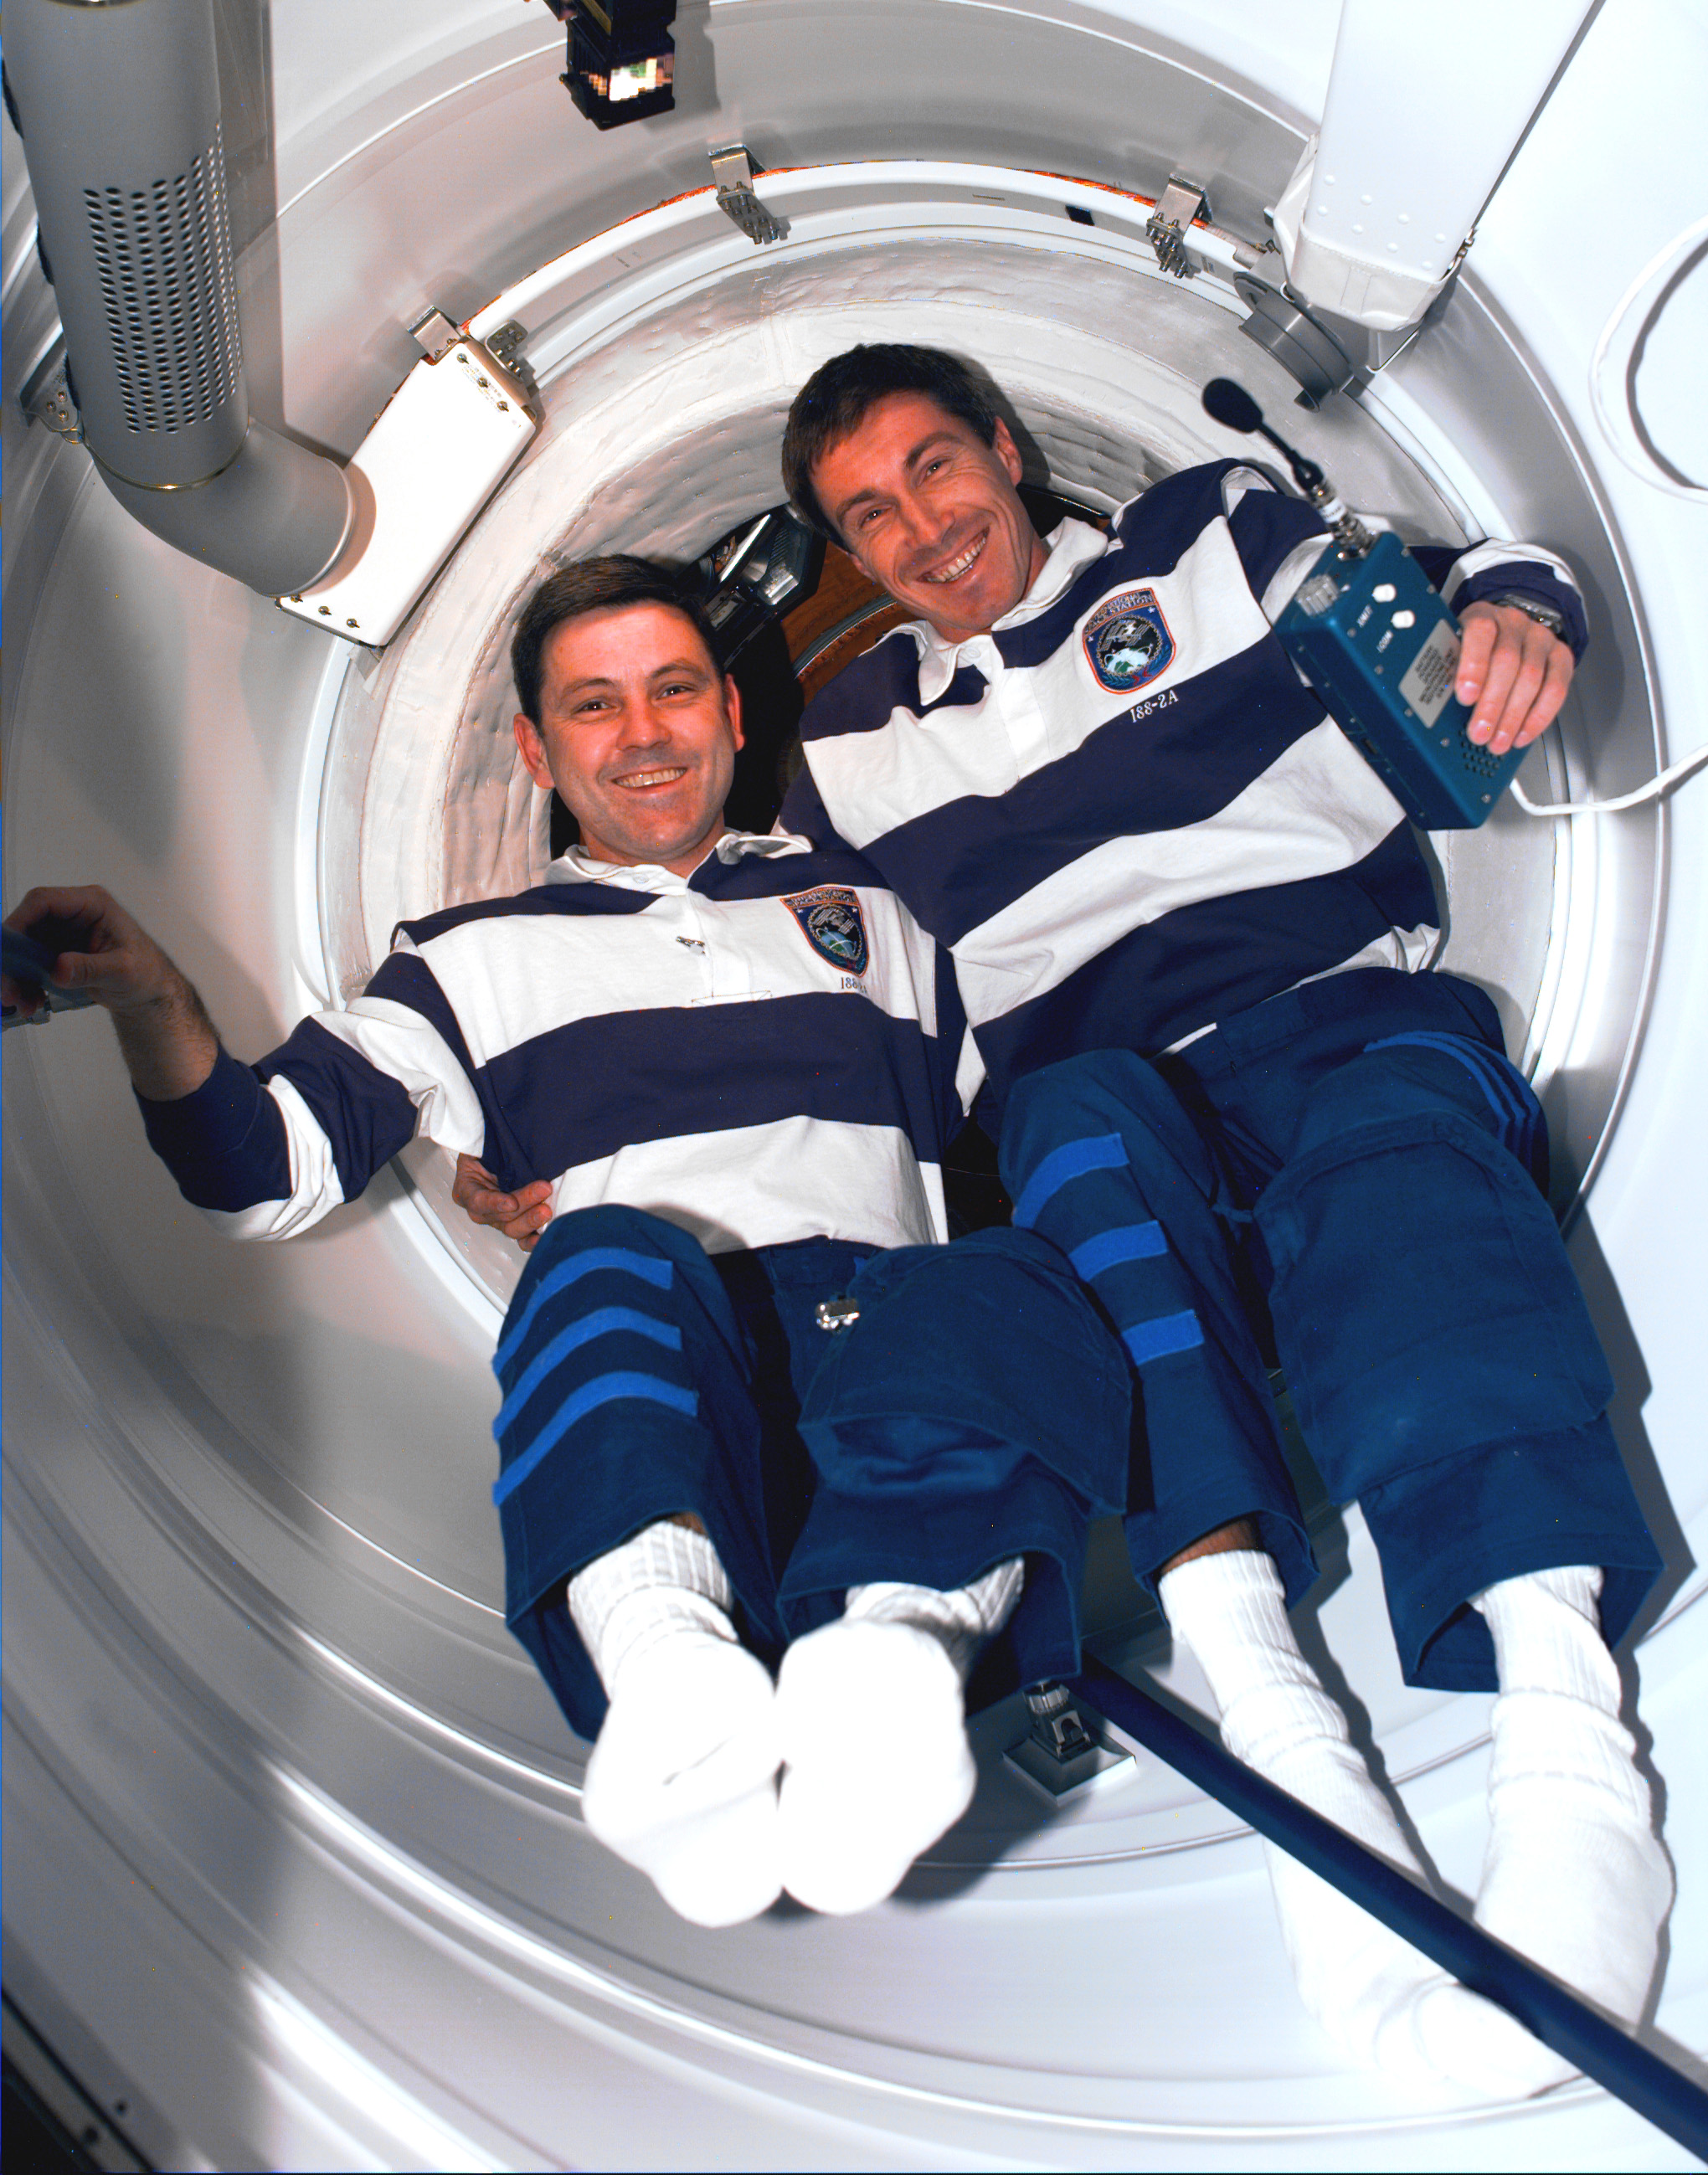 Astronaut Bob Cabana (left) and Cosmonaut Sergei Krikalev were the first people to enter the embryonic station in December 1998. Photo credit: NASA.